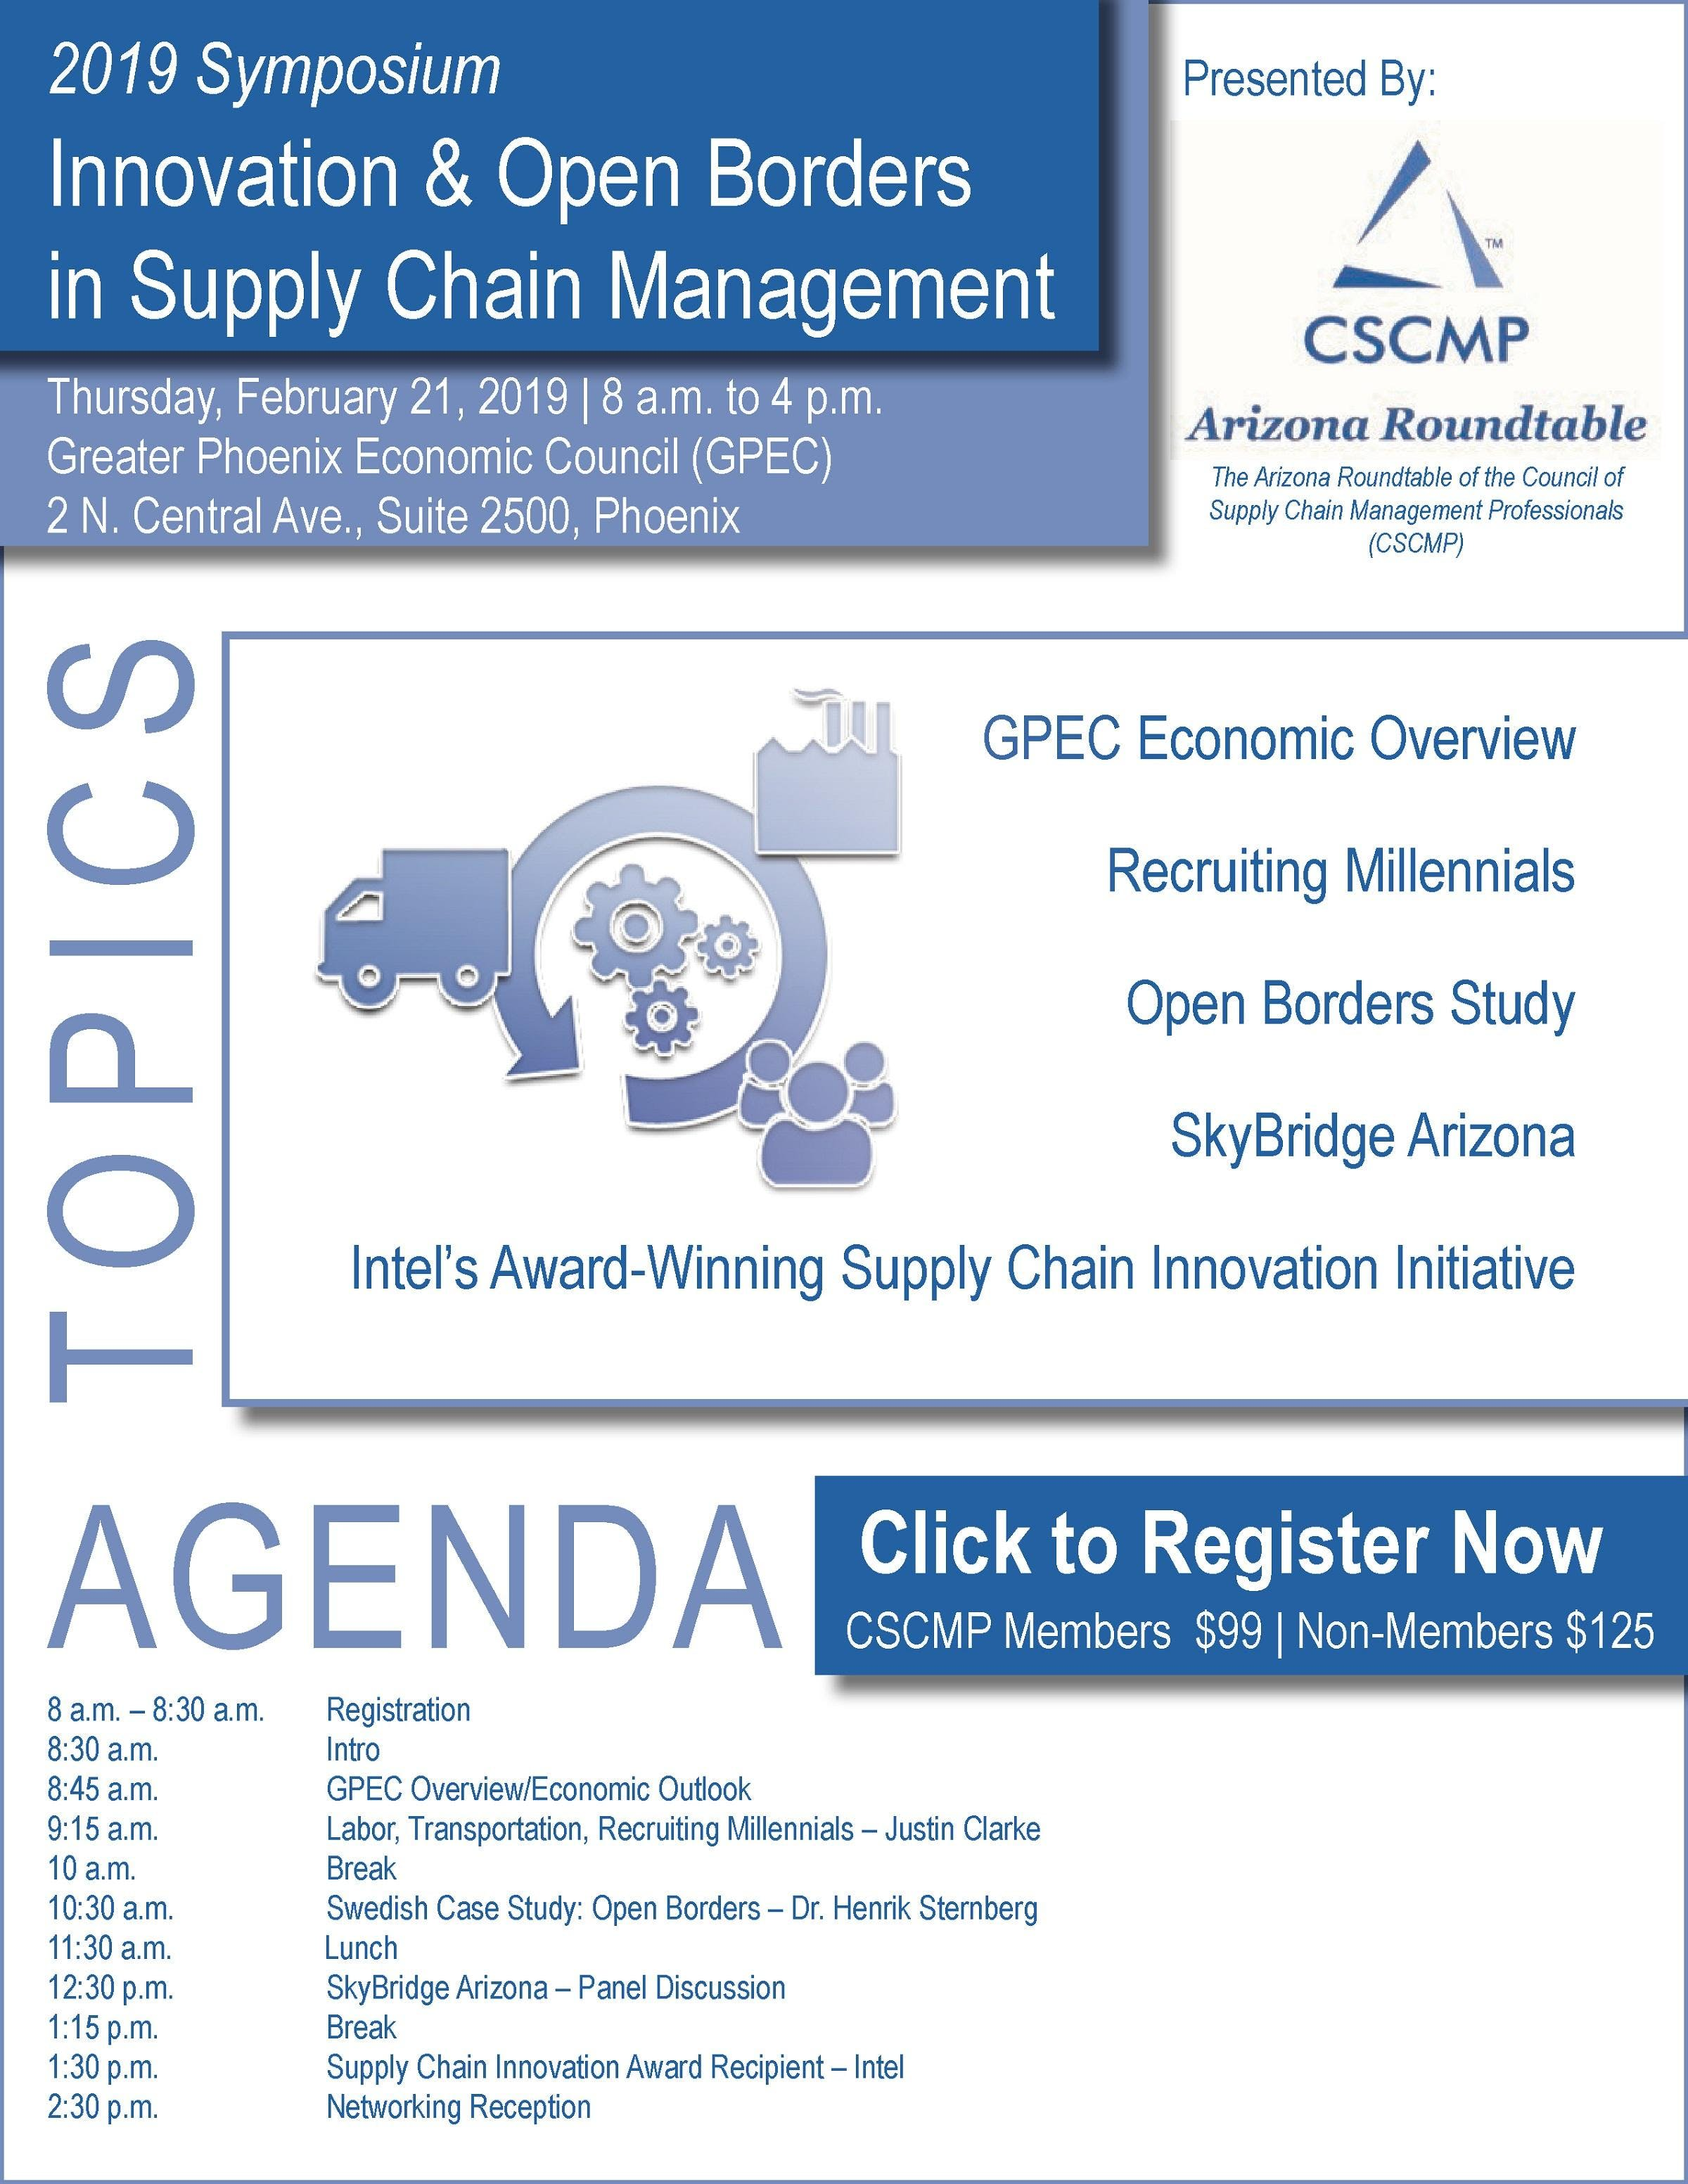 2019 Symposium Innovation & Open Borders in Supply Chain Management